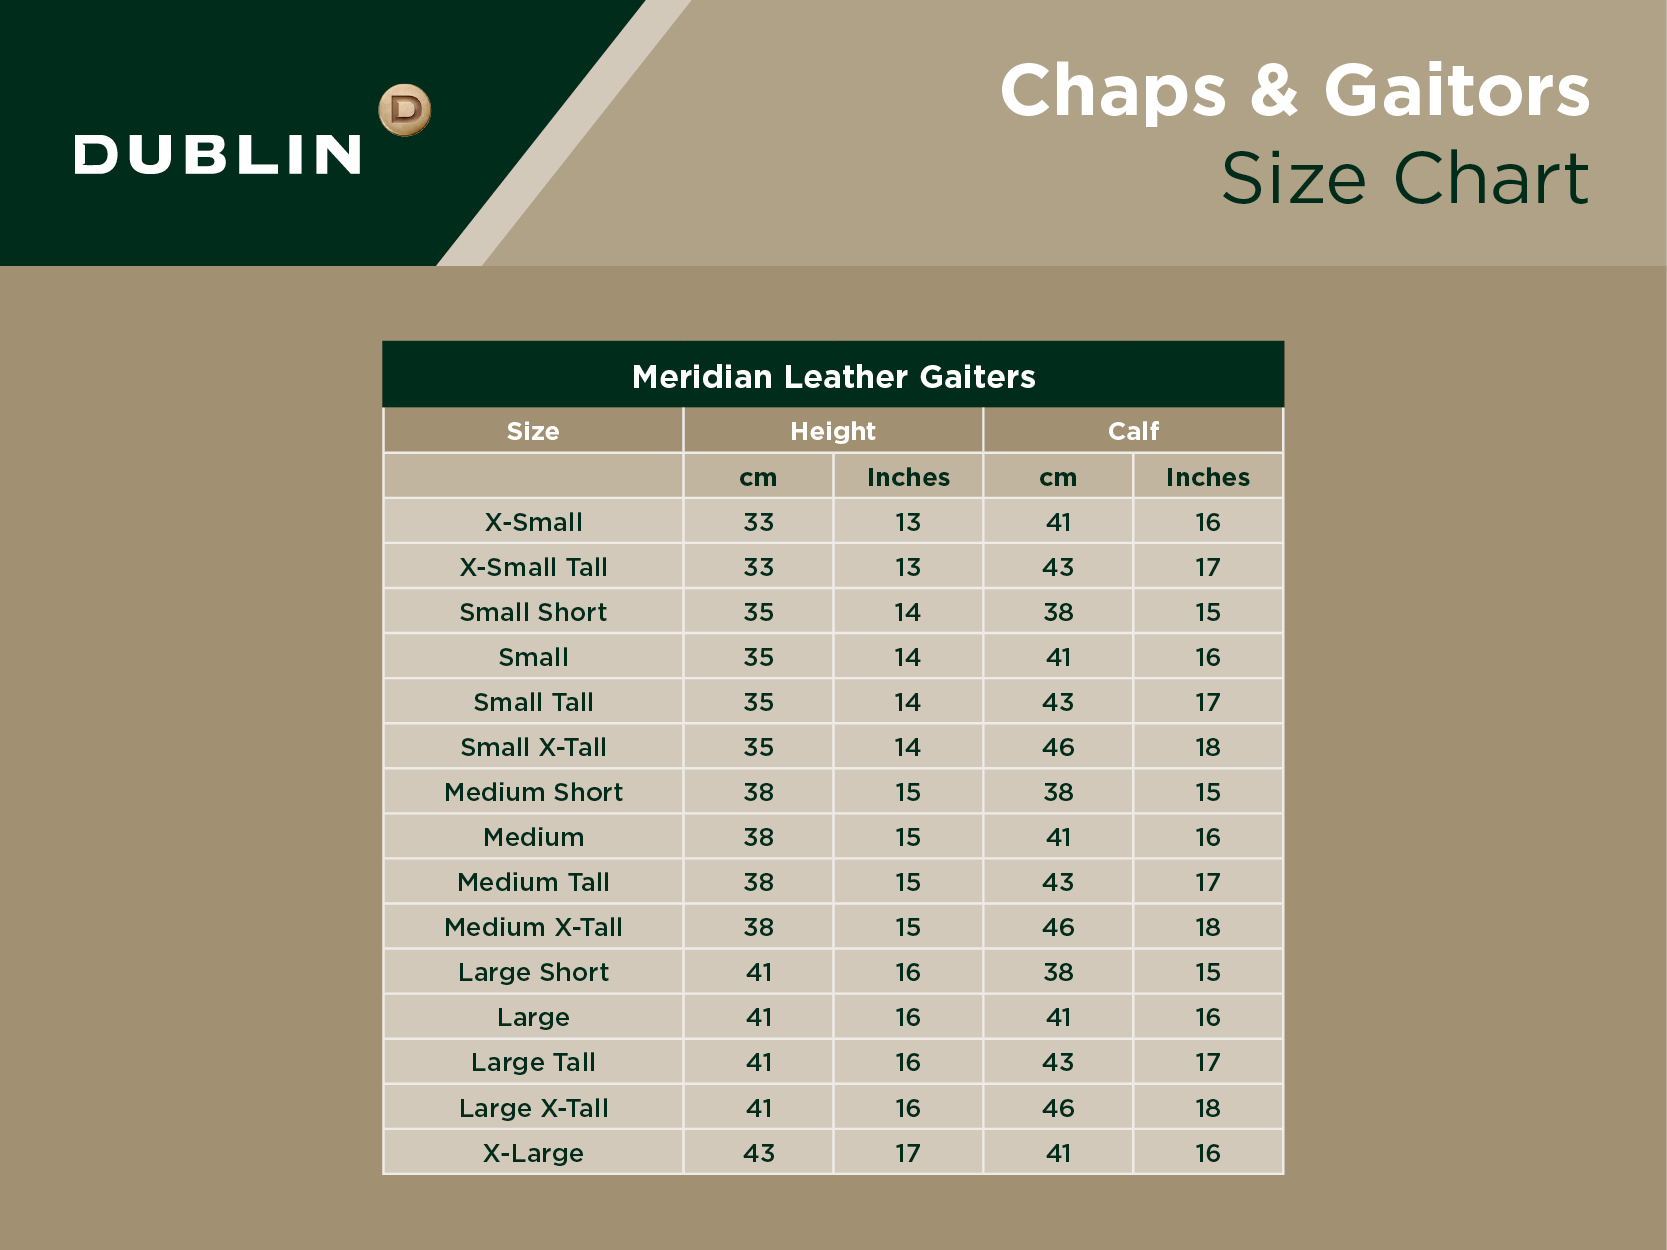 Meridian Leather Gaiters Size Chart